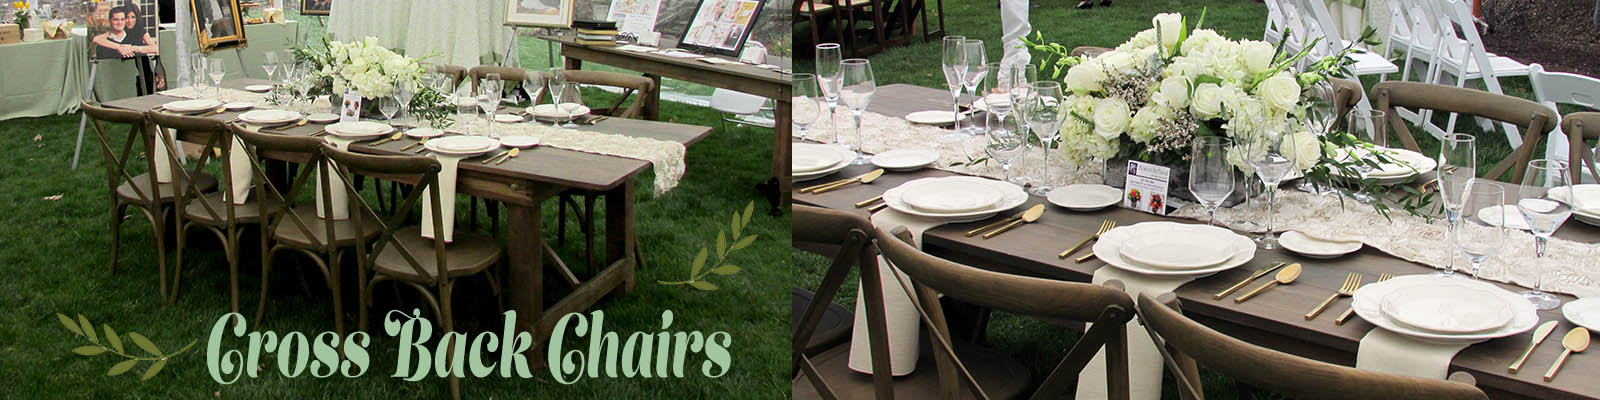 Linen rentals in the Greater Philadelphia Area